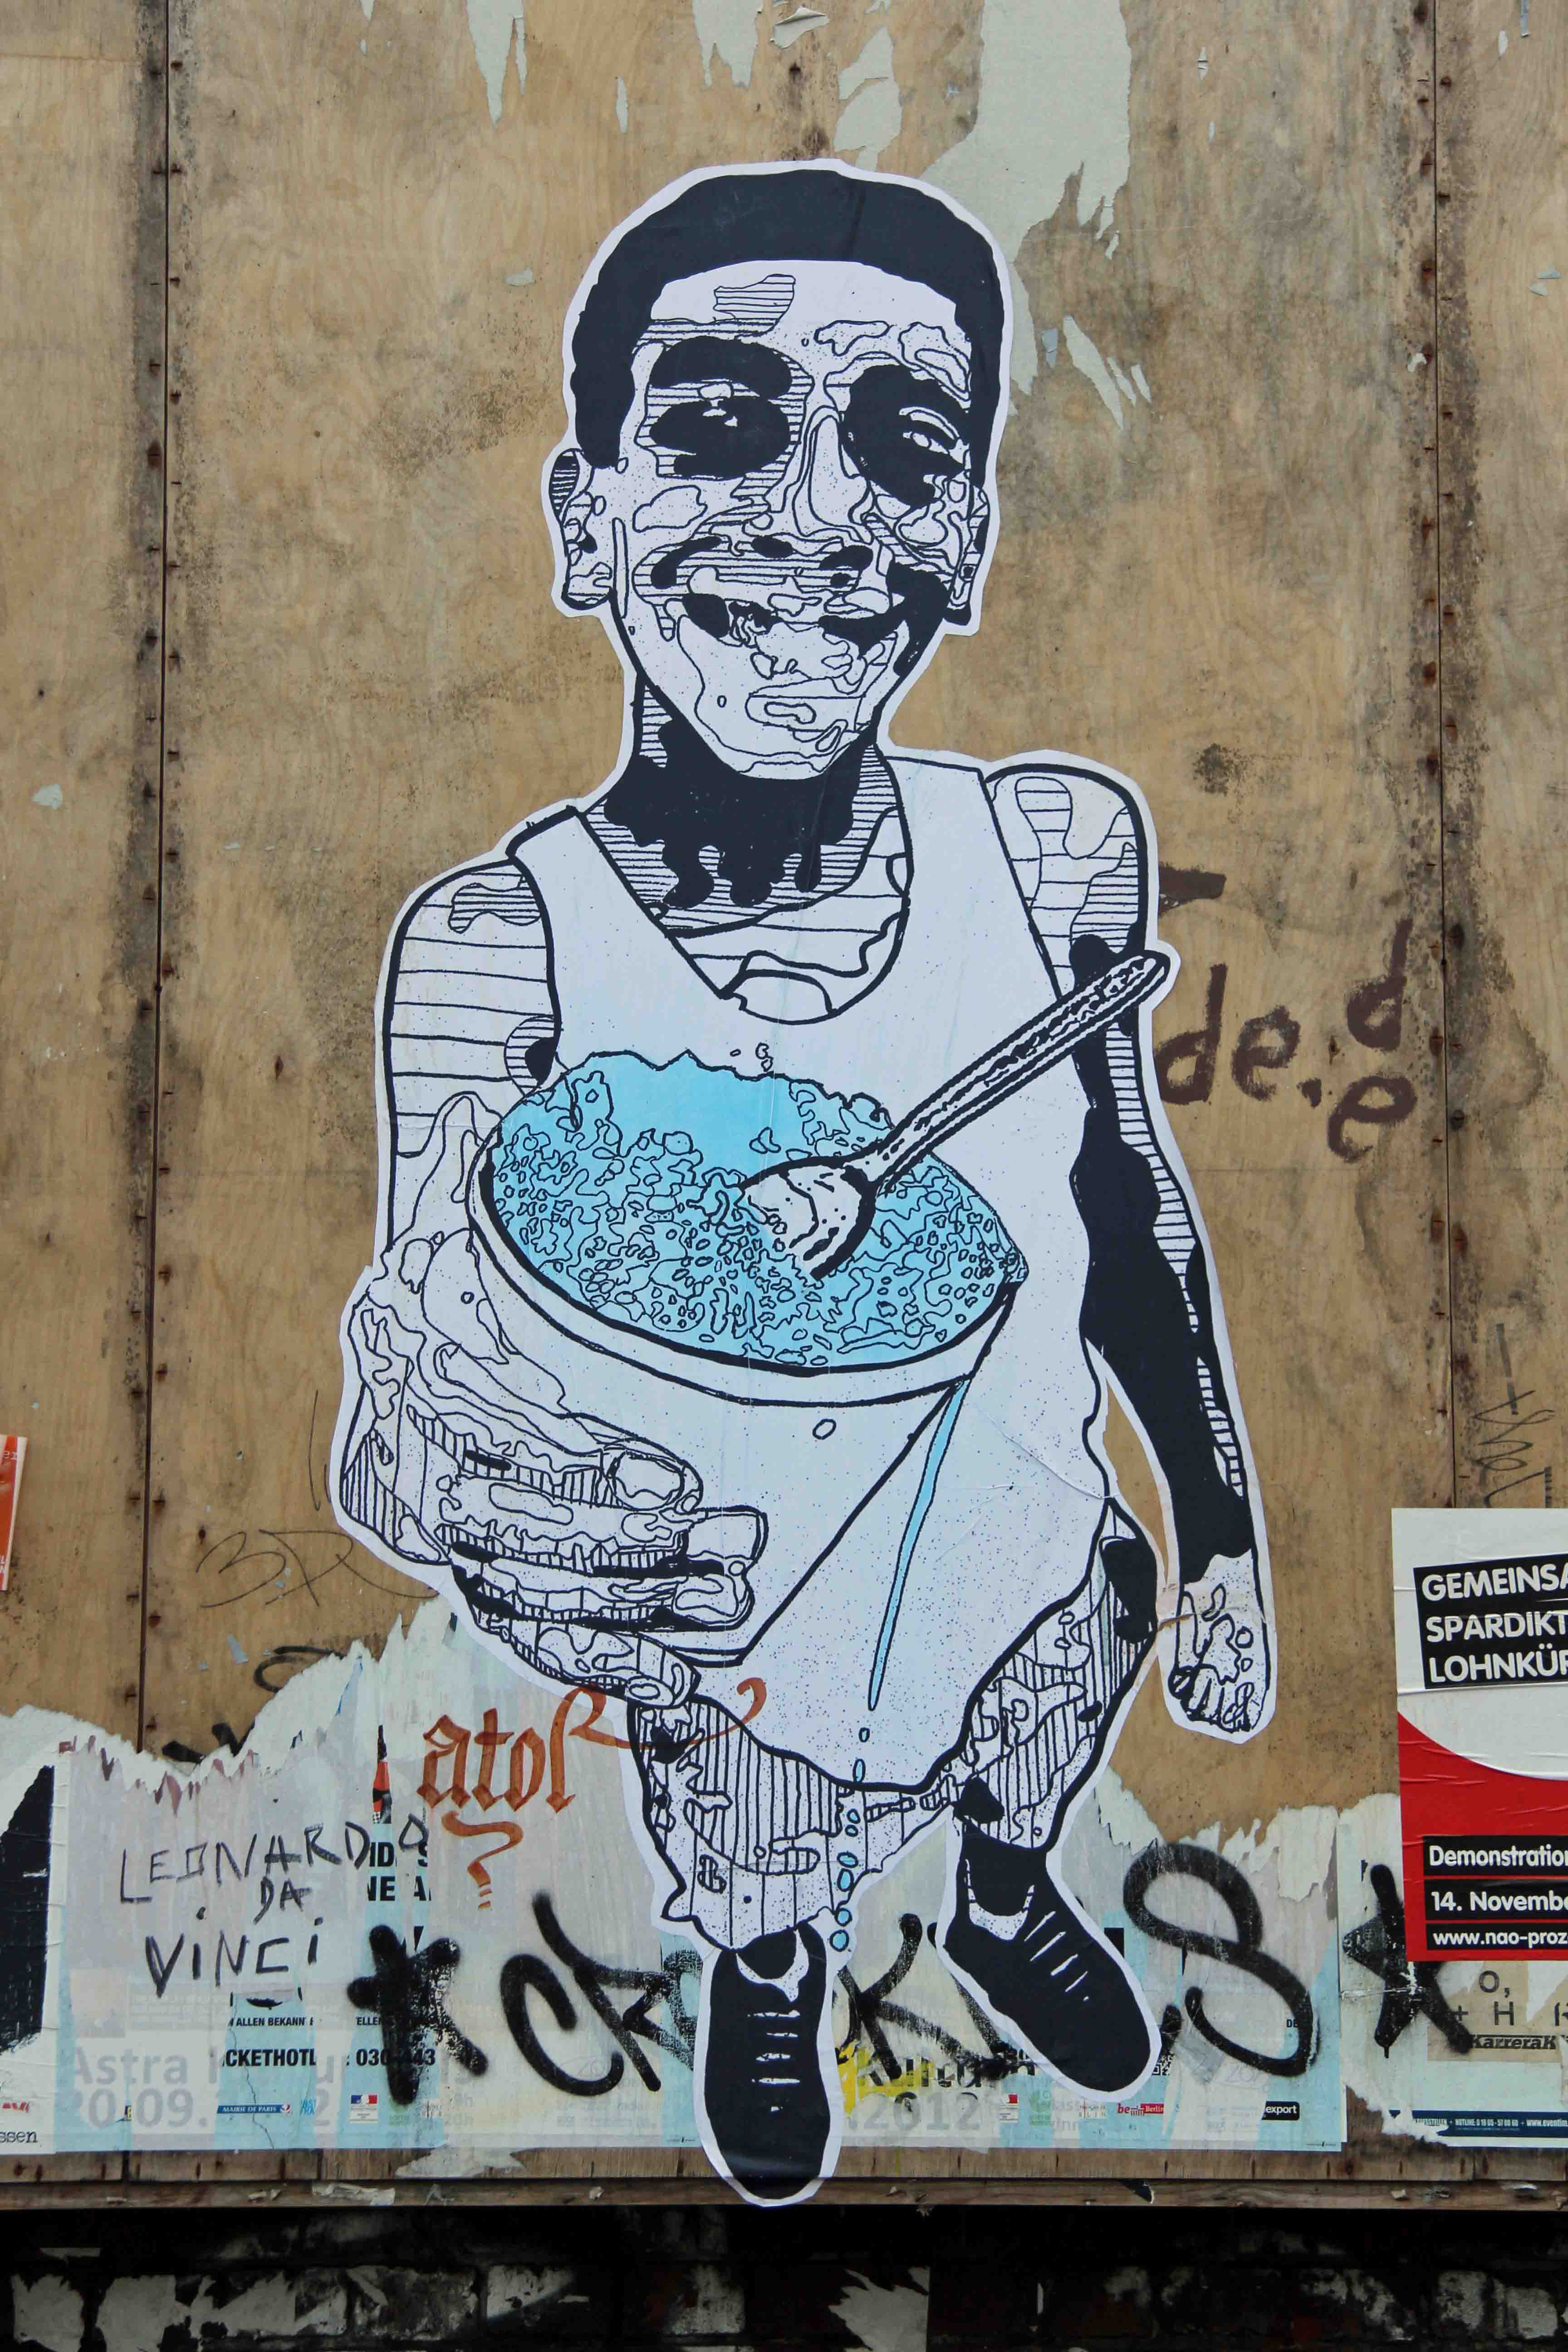 Blue Food - Street Art by NETHER in Berlin